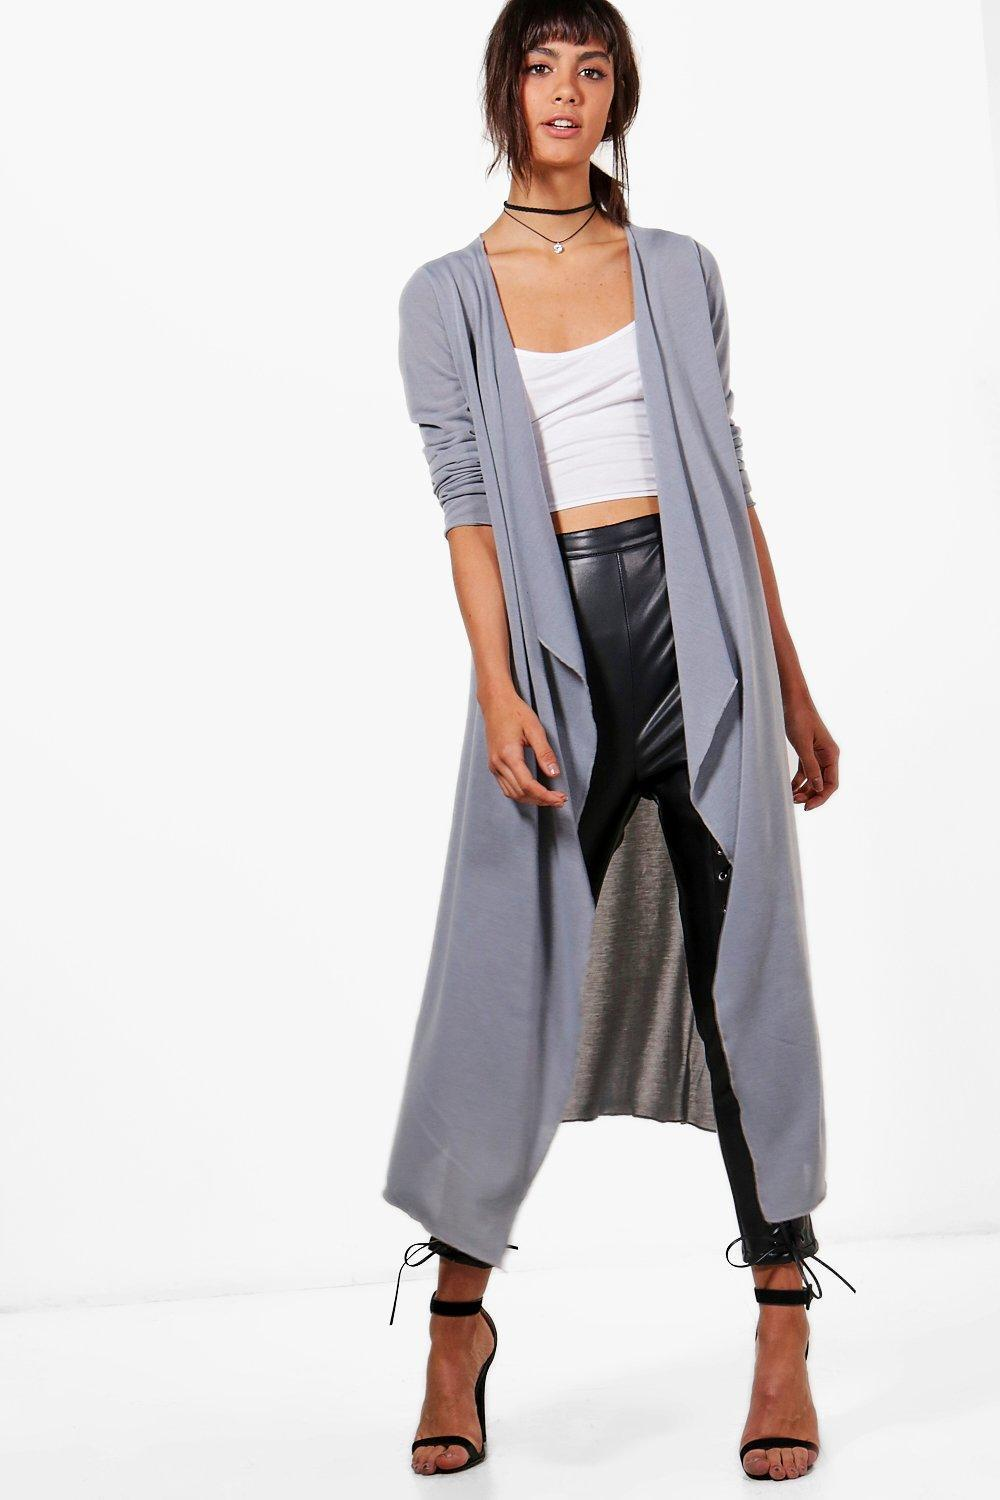 Boohoo Jade Waterfall Maxi Cardigan in Gray | Lyst